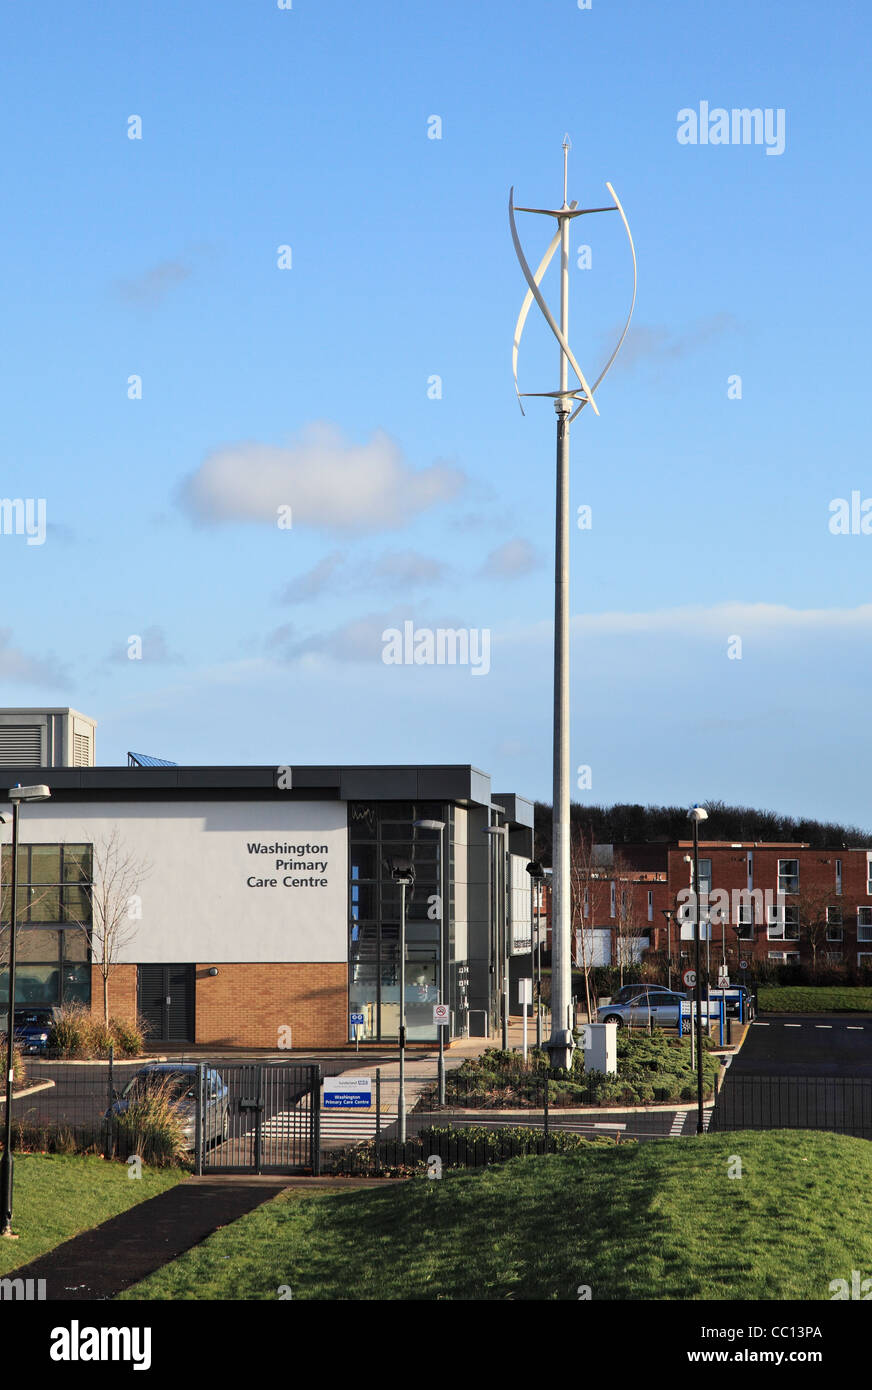 Washington Primary Care Centre with vertical axis wind turbine, north east England, UK - Stock Image